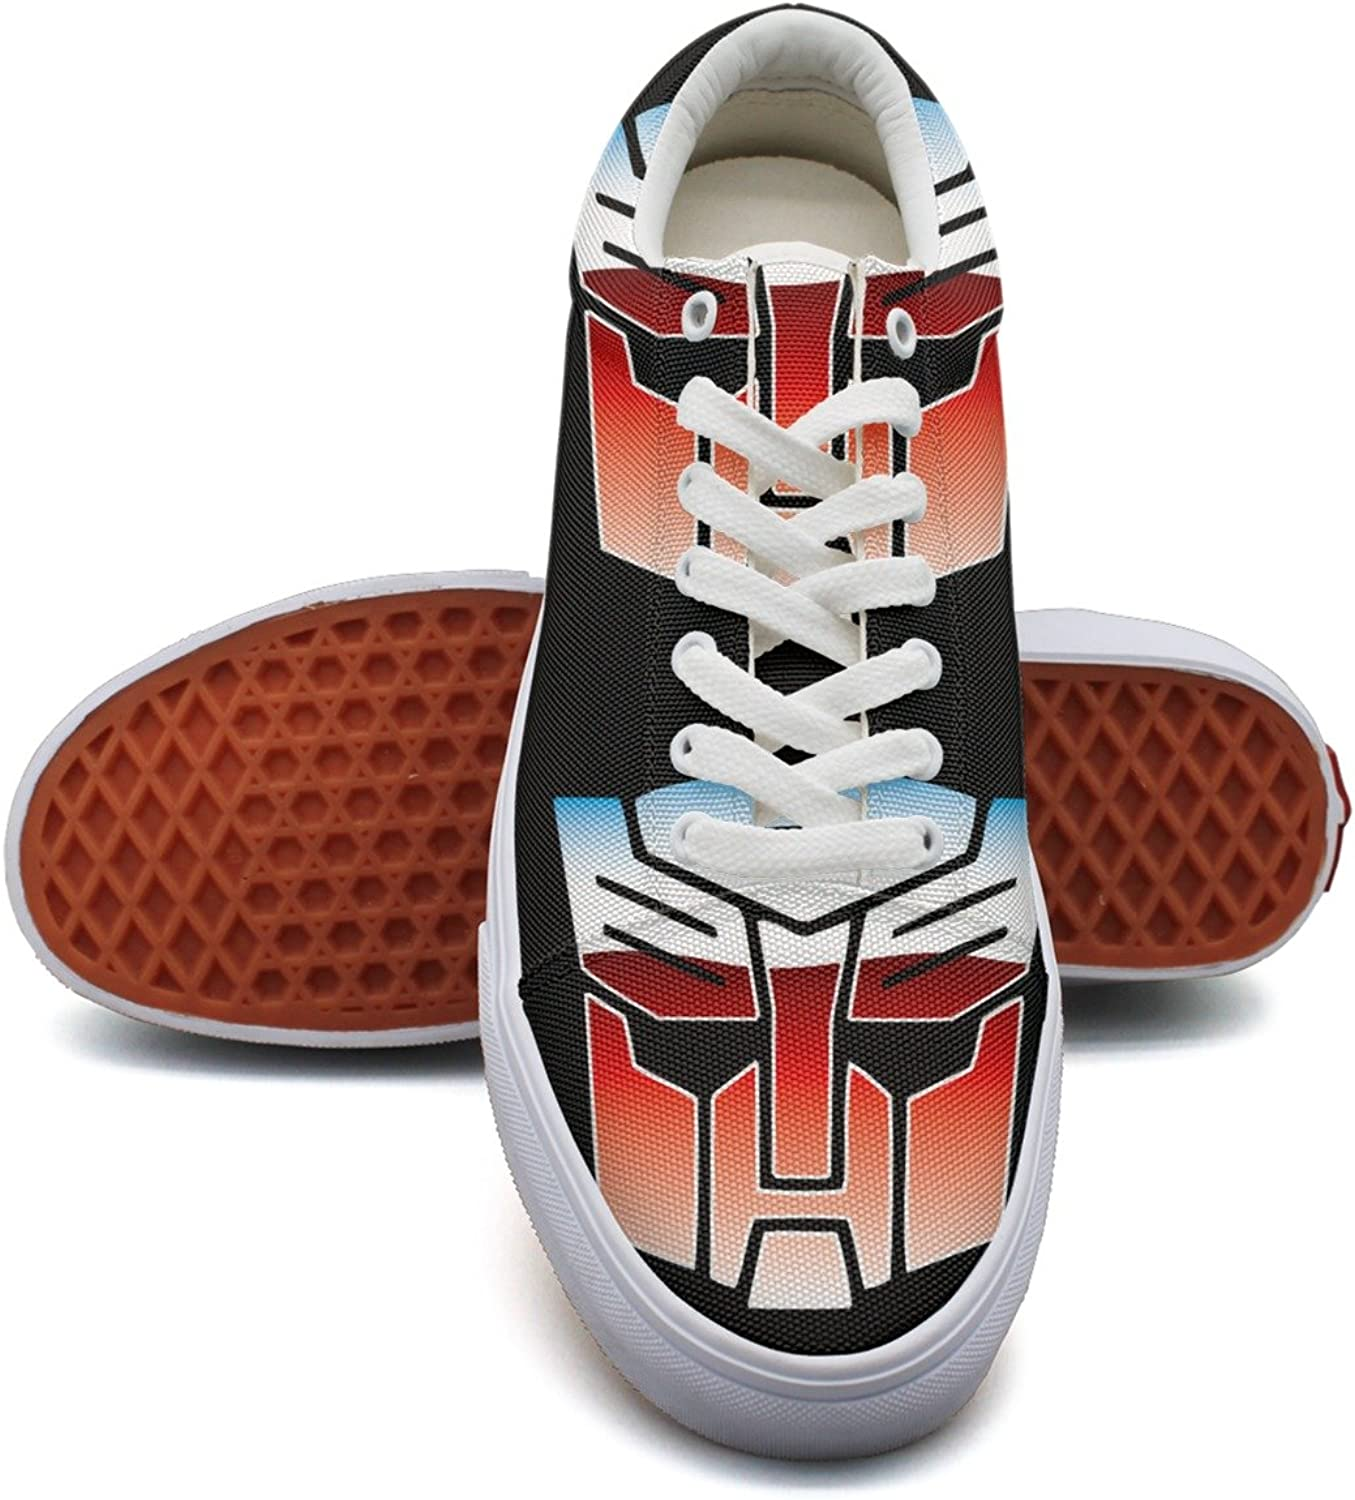 Charmarm Cool Red Skull Iron Car Man Mask Logo Womens Comfortable Canvas Sneakers